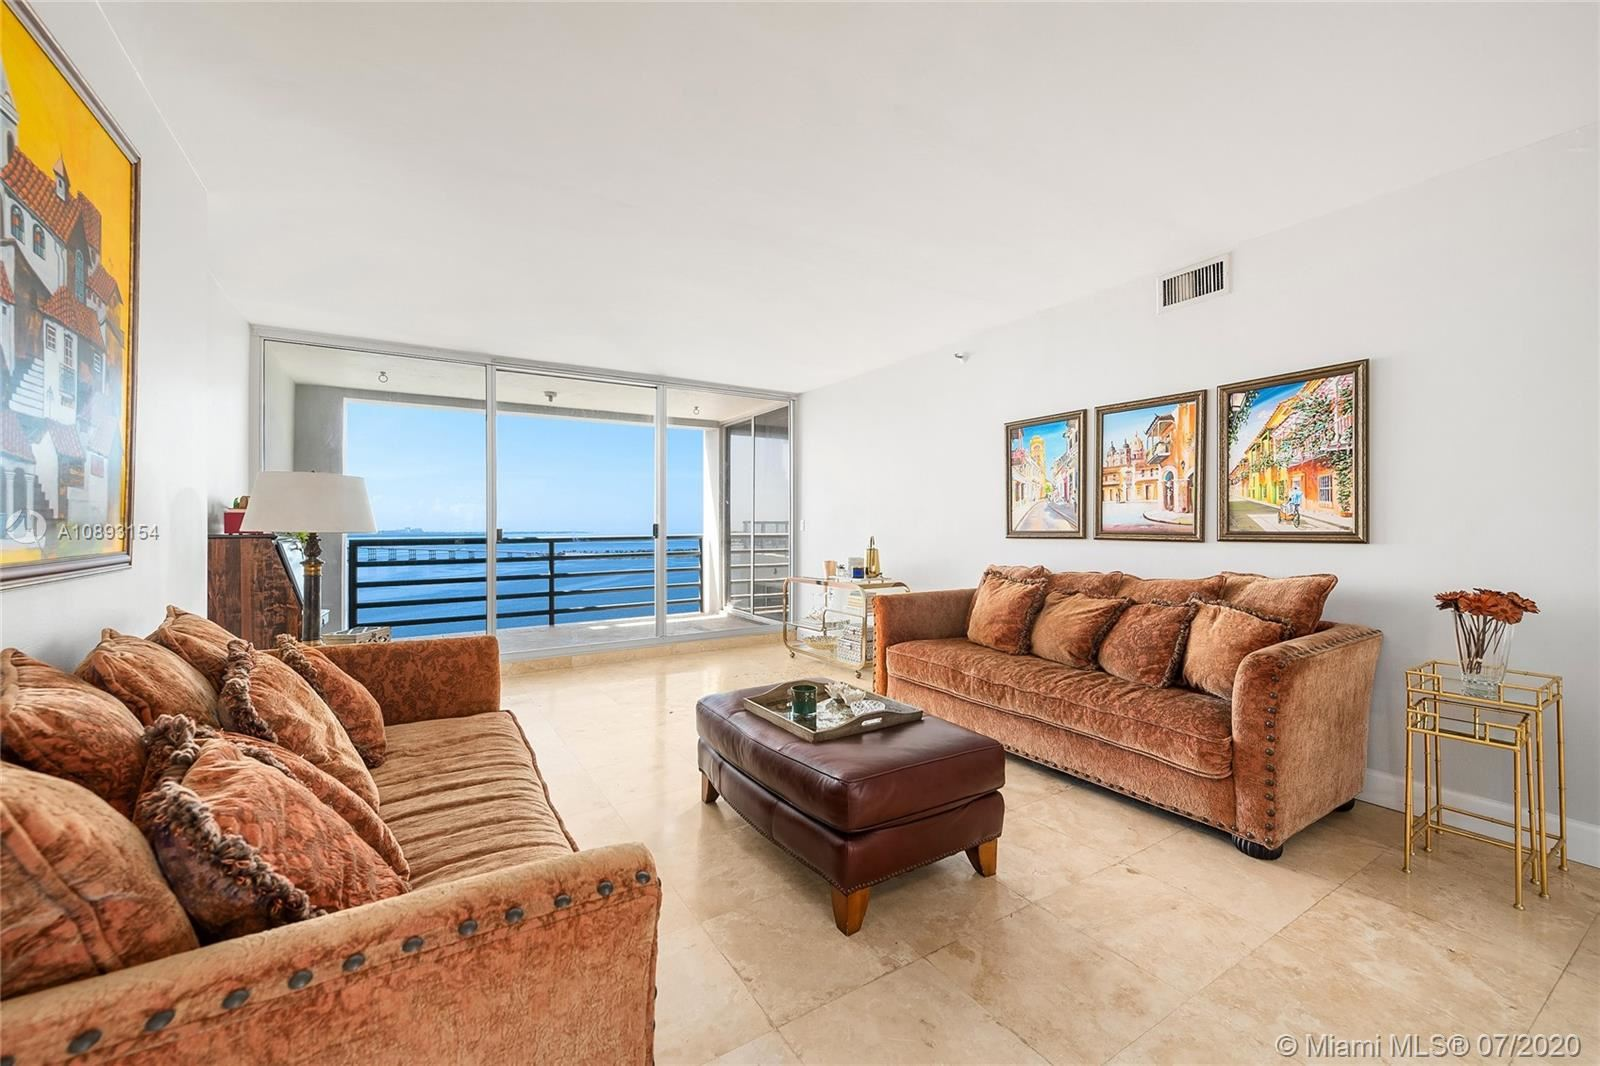 1541 Brickell Ave #B1904, Miami, FL 33129 - #: A10893154